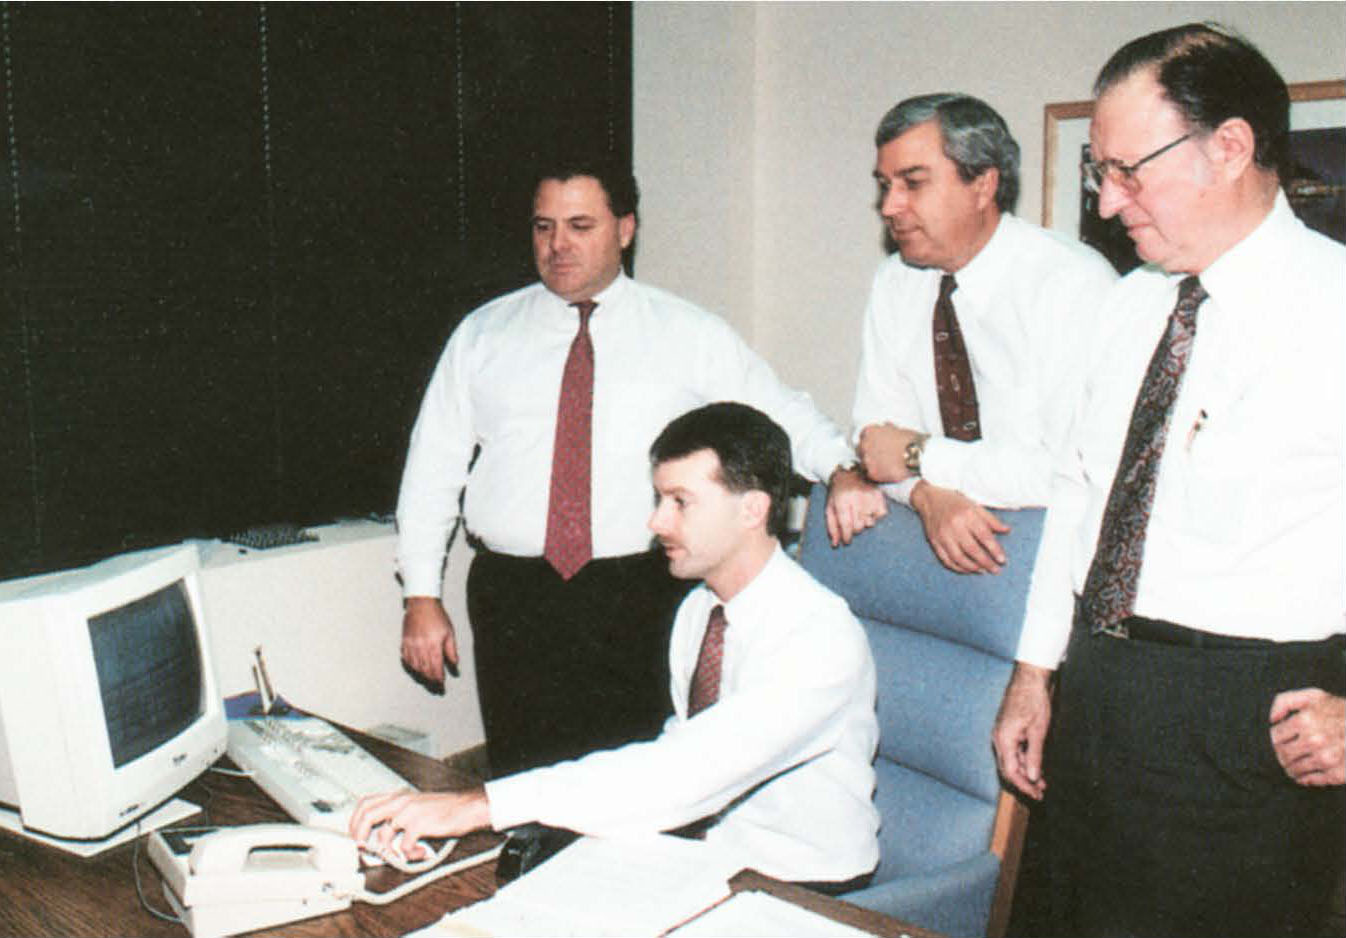 MiTek's History - Dave McQuinn and three men at a desk with late 1980s computer